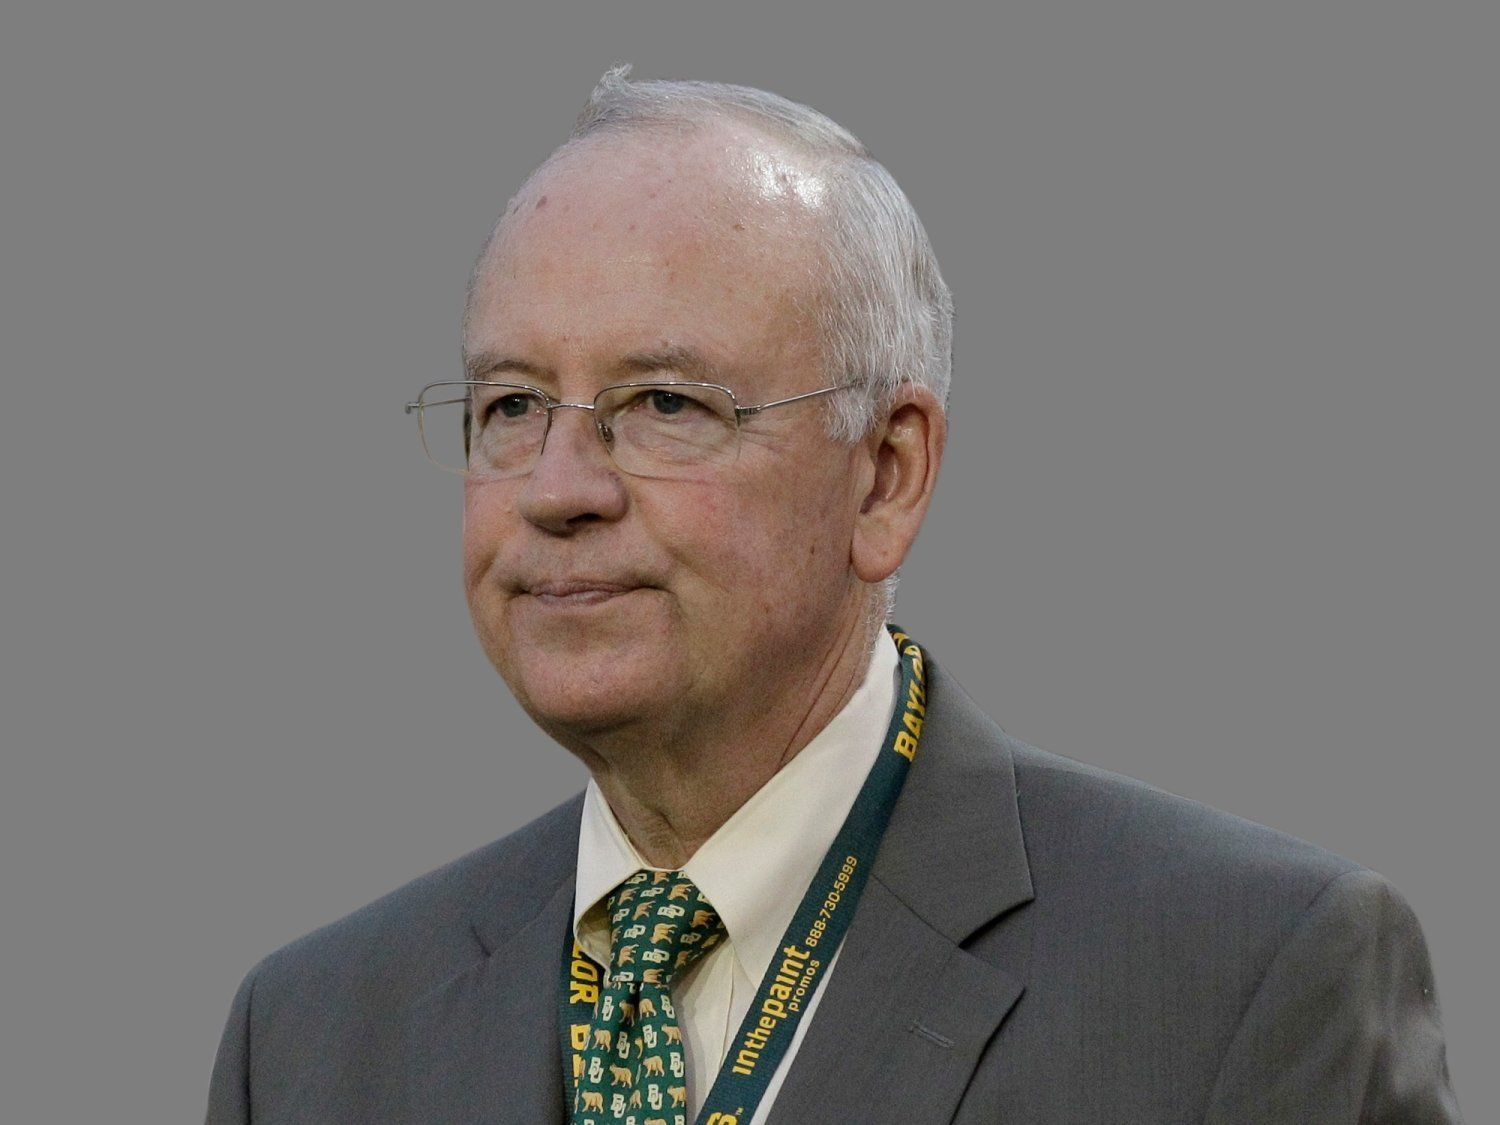 Kenneth Starr headshot, Baylor University President, graphic element on gray